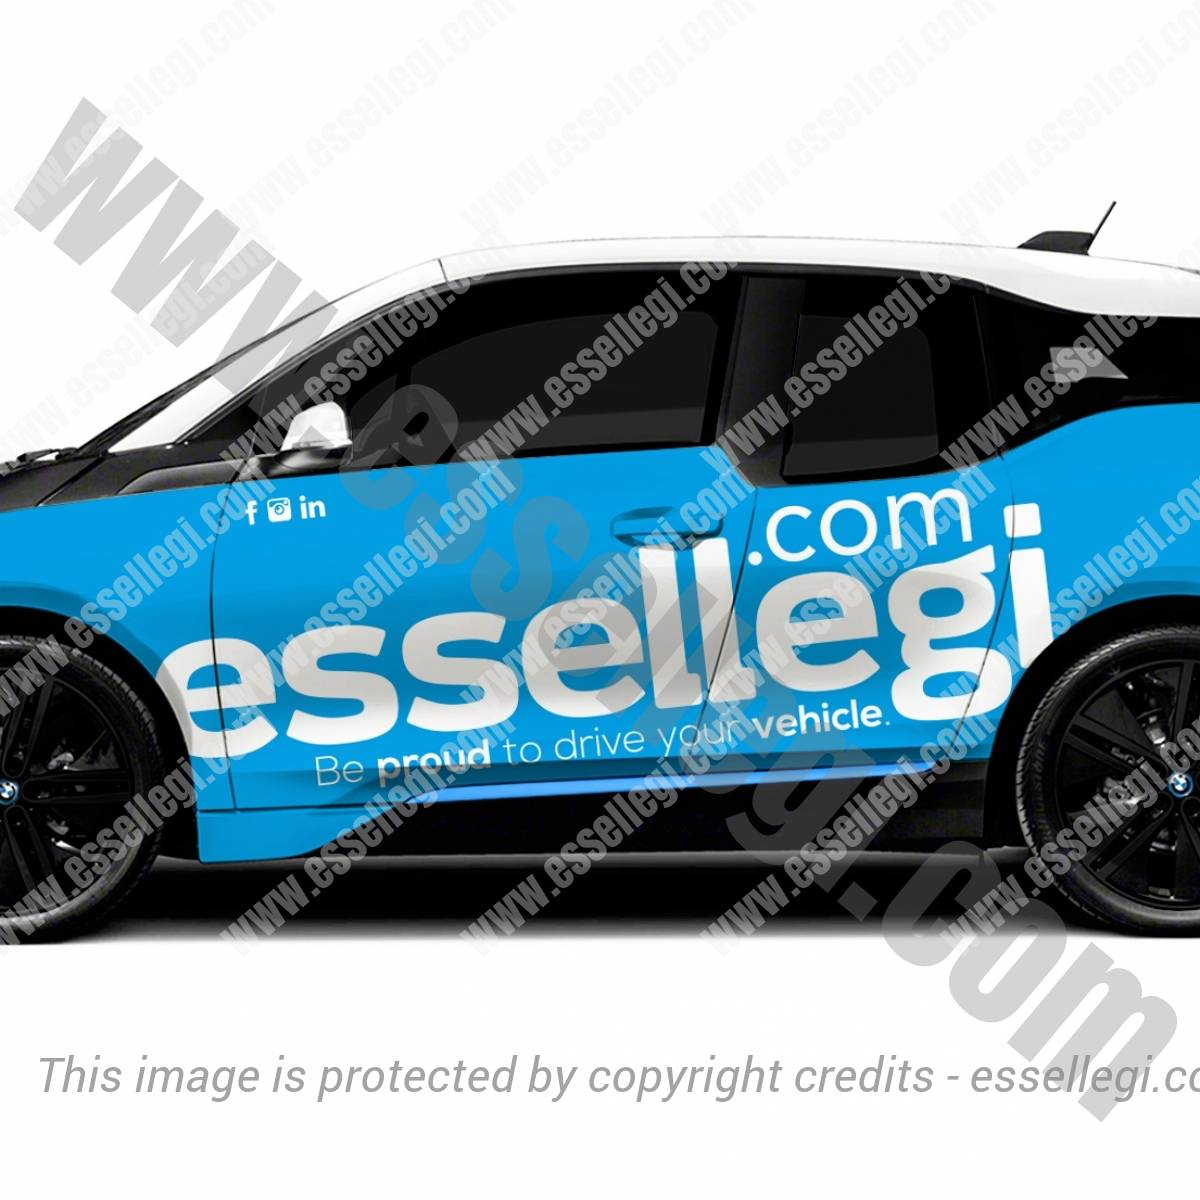 ESSELLEGI.COM | CAR WRAP DESIGN 🇮🇹